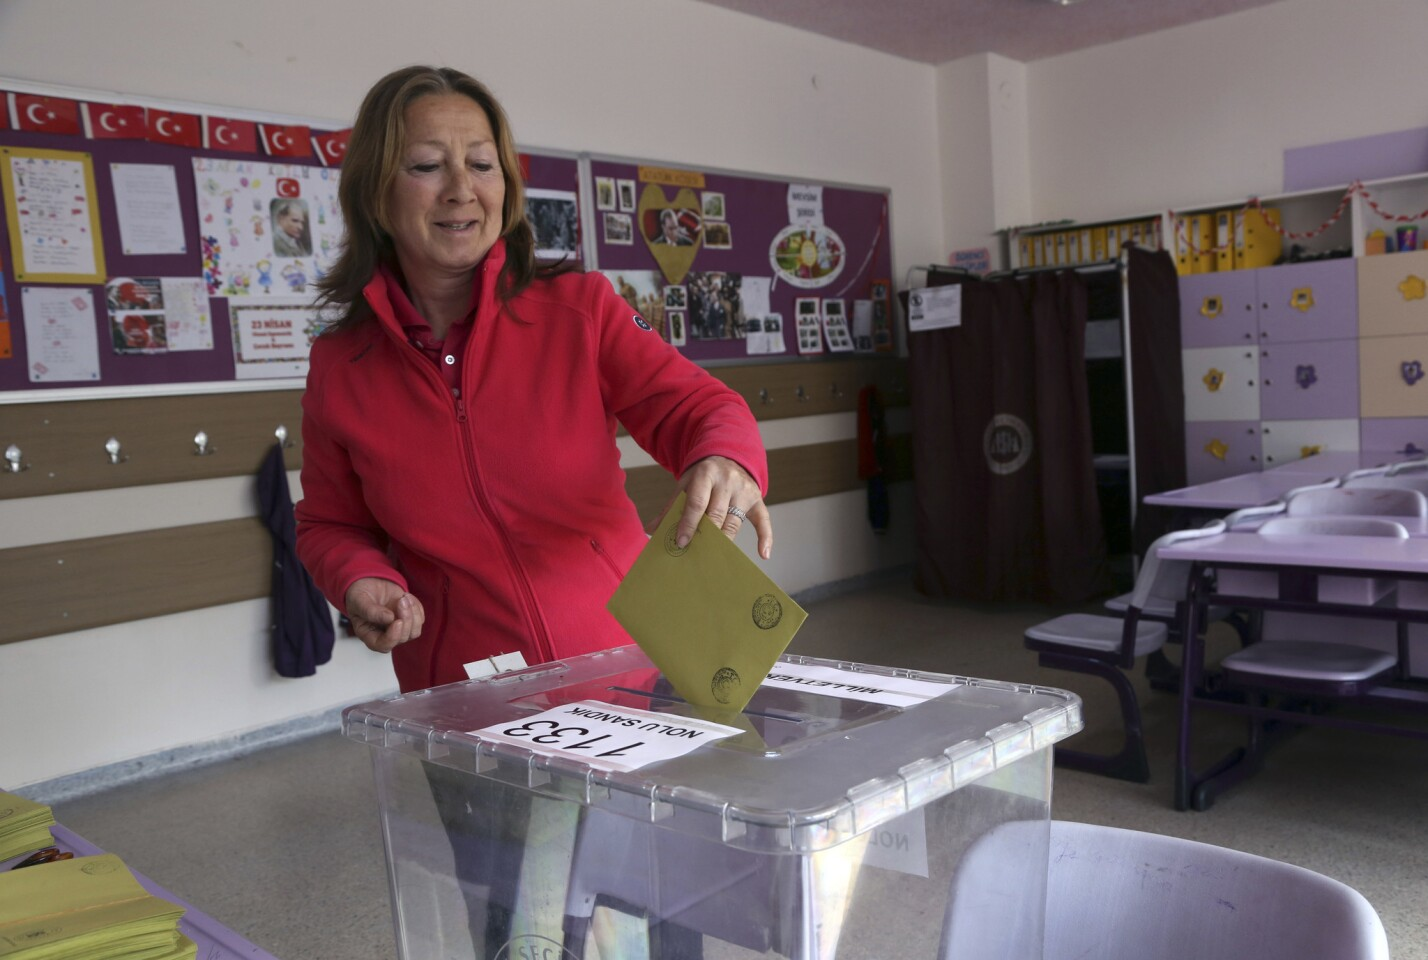 A Turkish woman casts her vote at a polling station in an Ankara primary school on June 7.